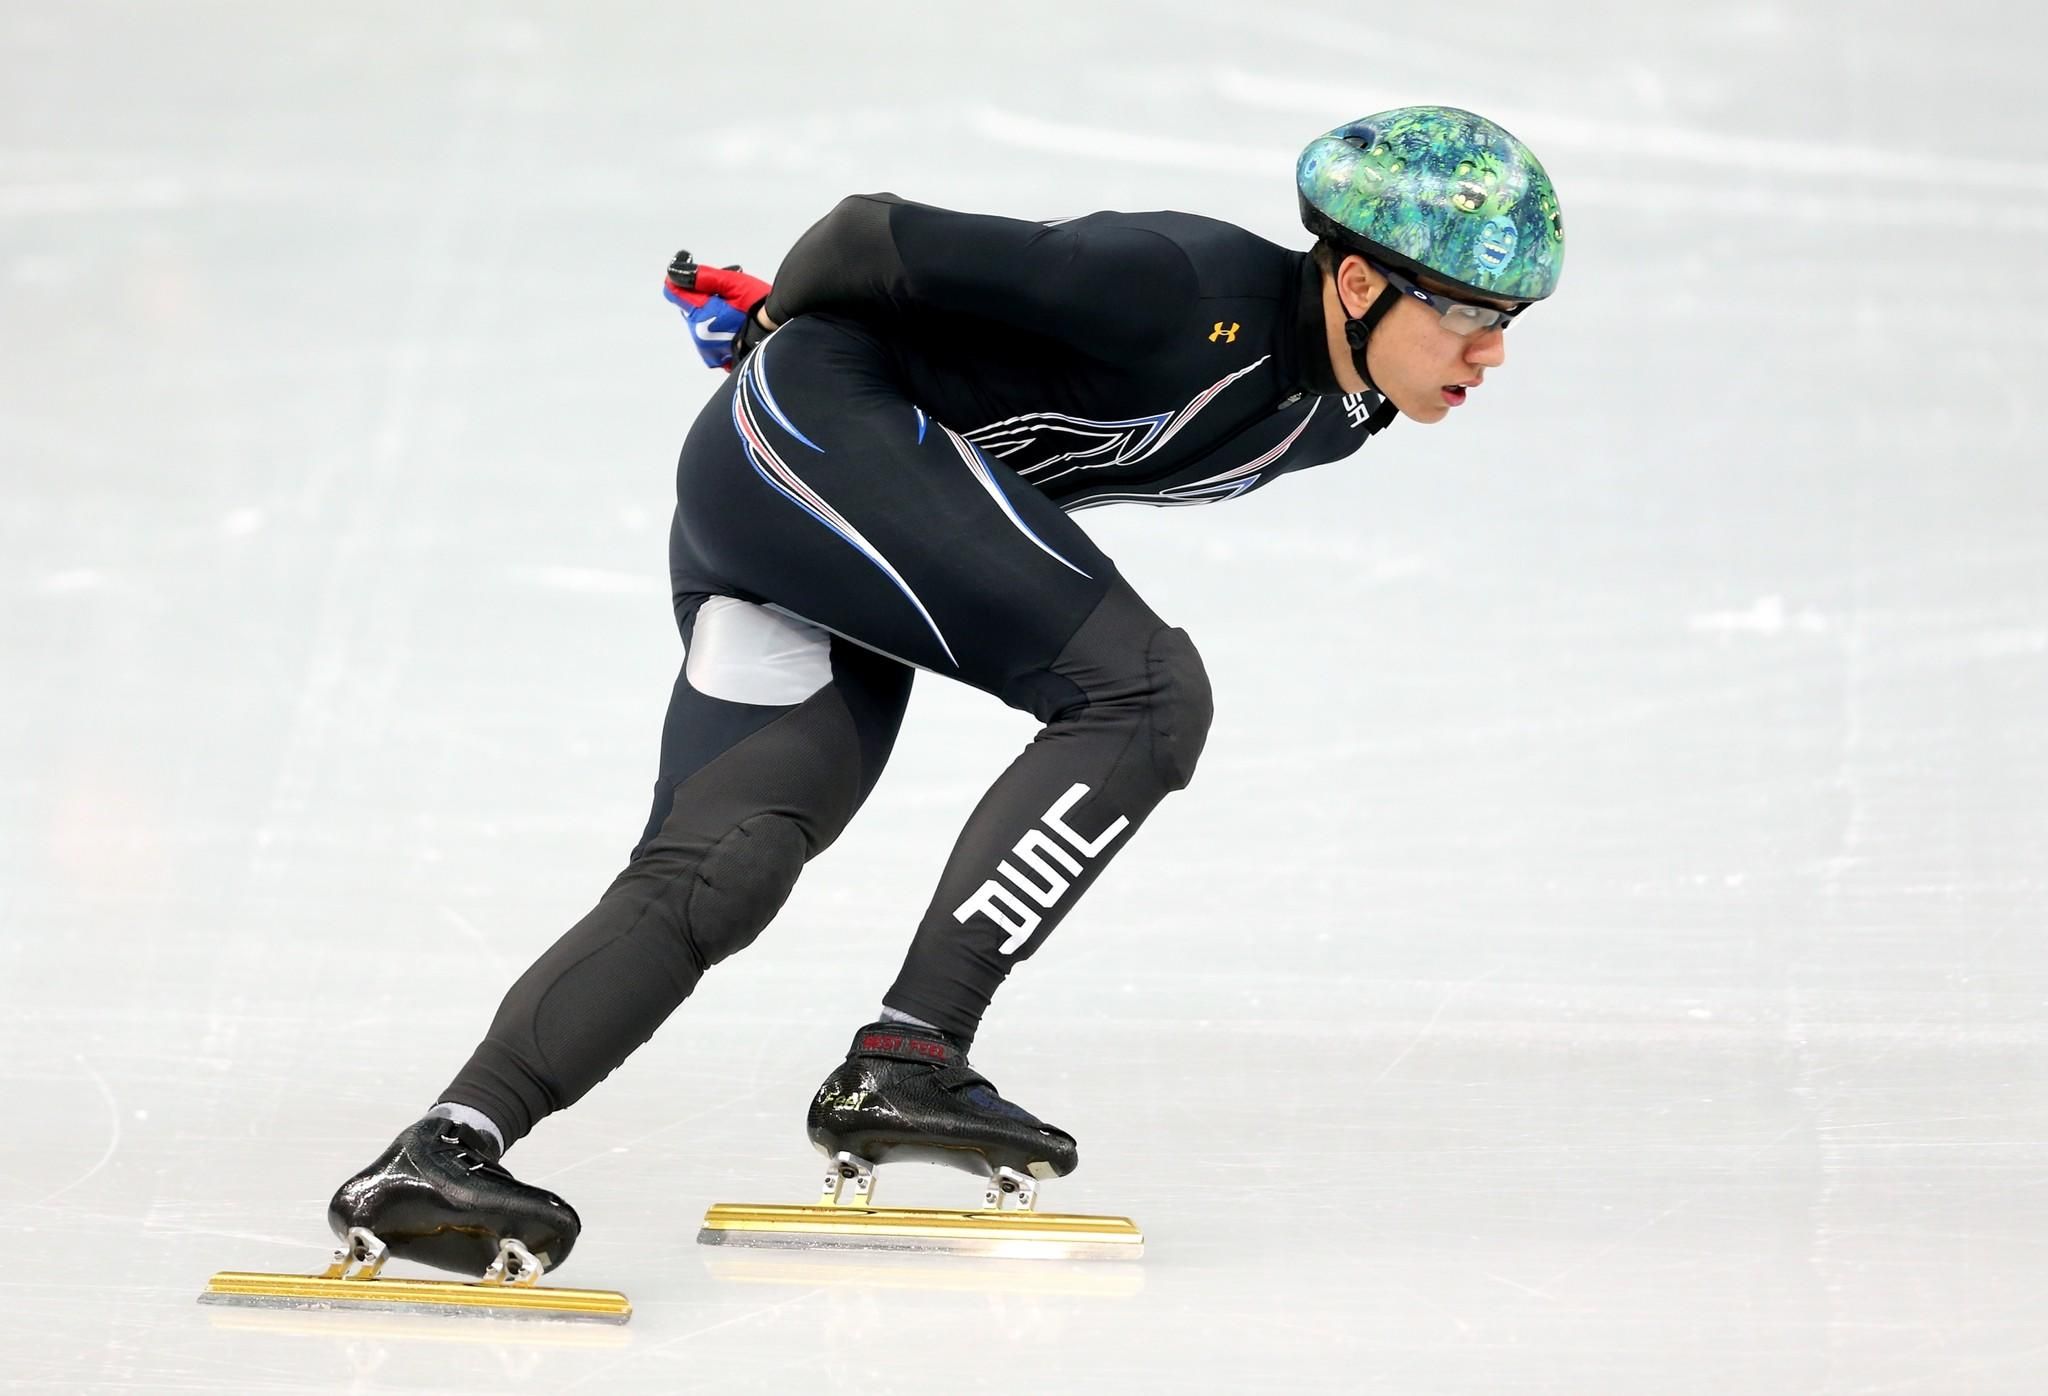 J.R. Celski practices at the Iceberg Skating Palace. (Matthew Stockman/Getty Photo)